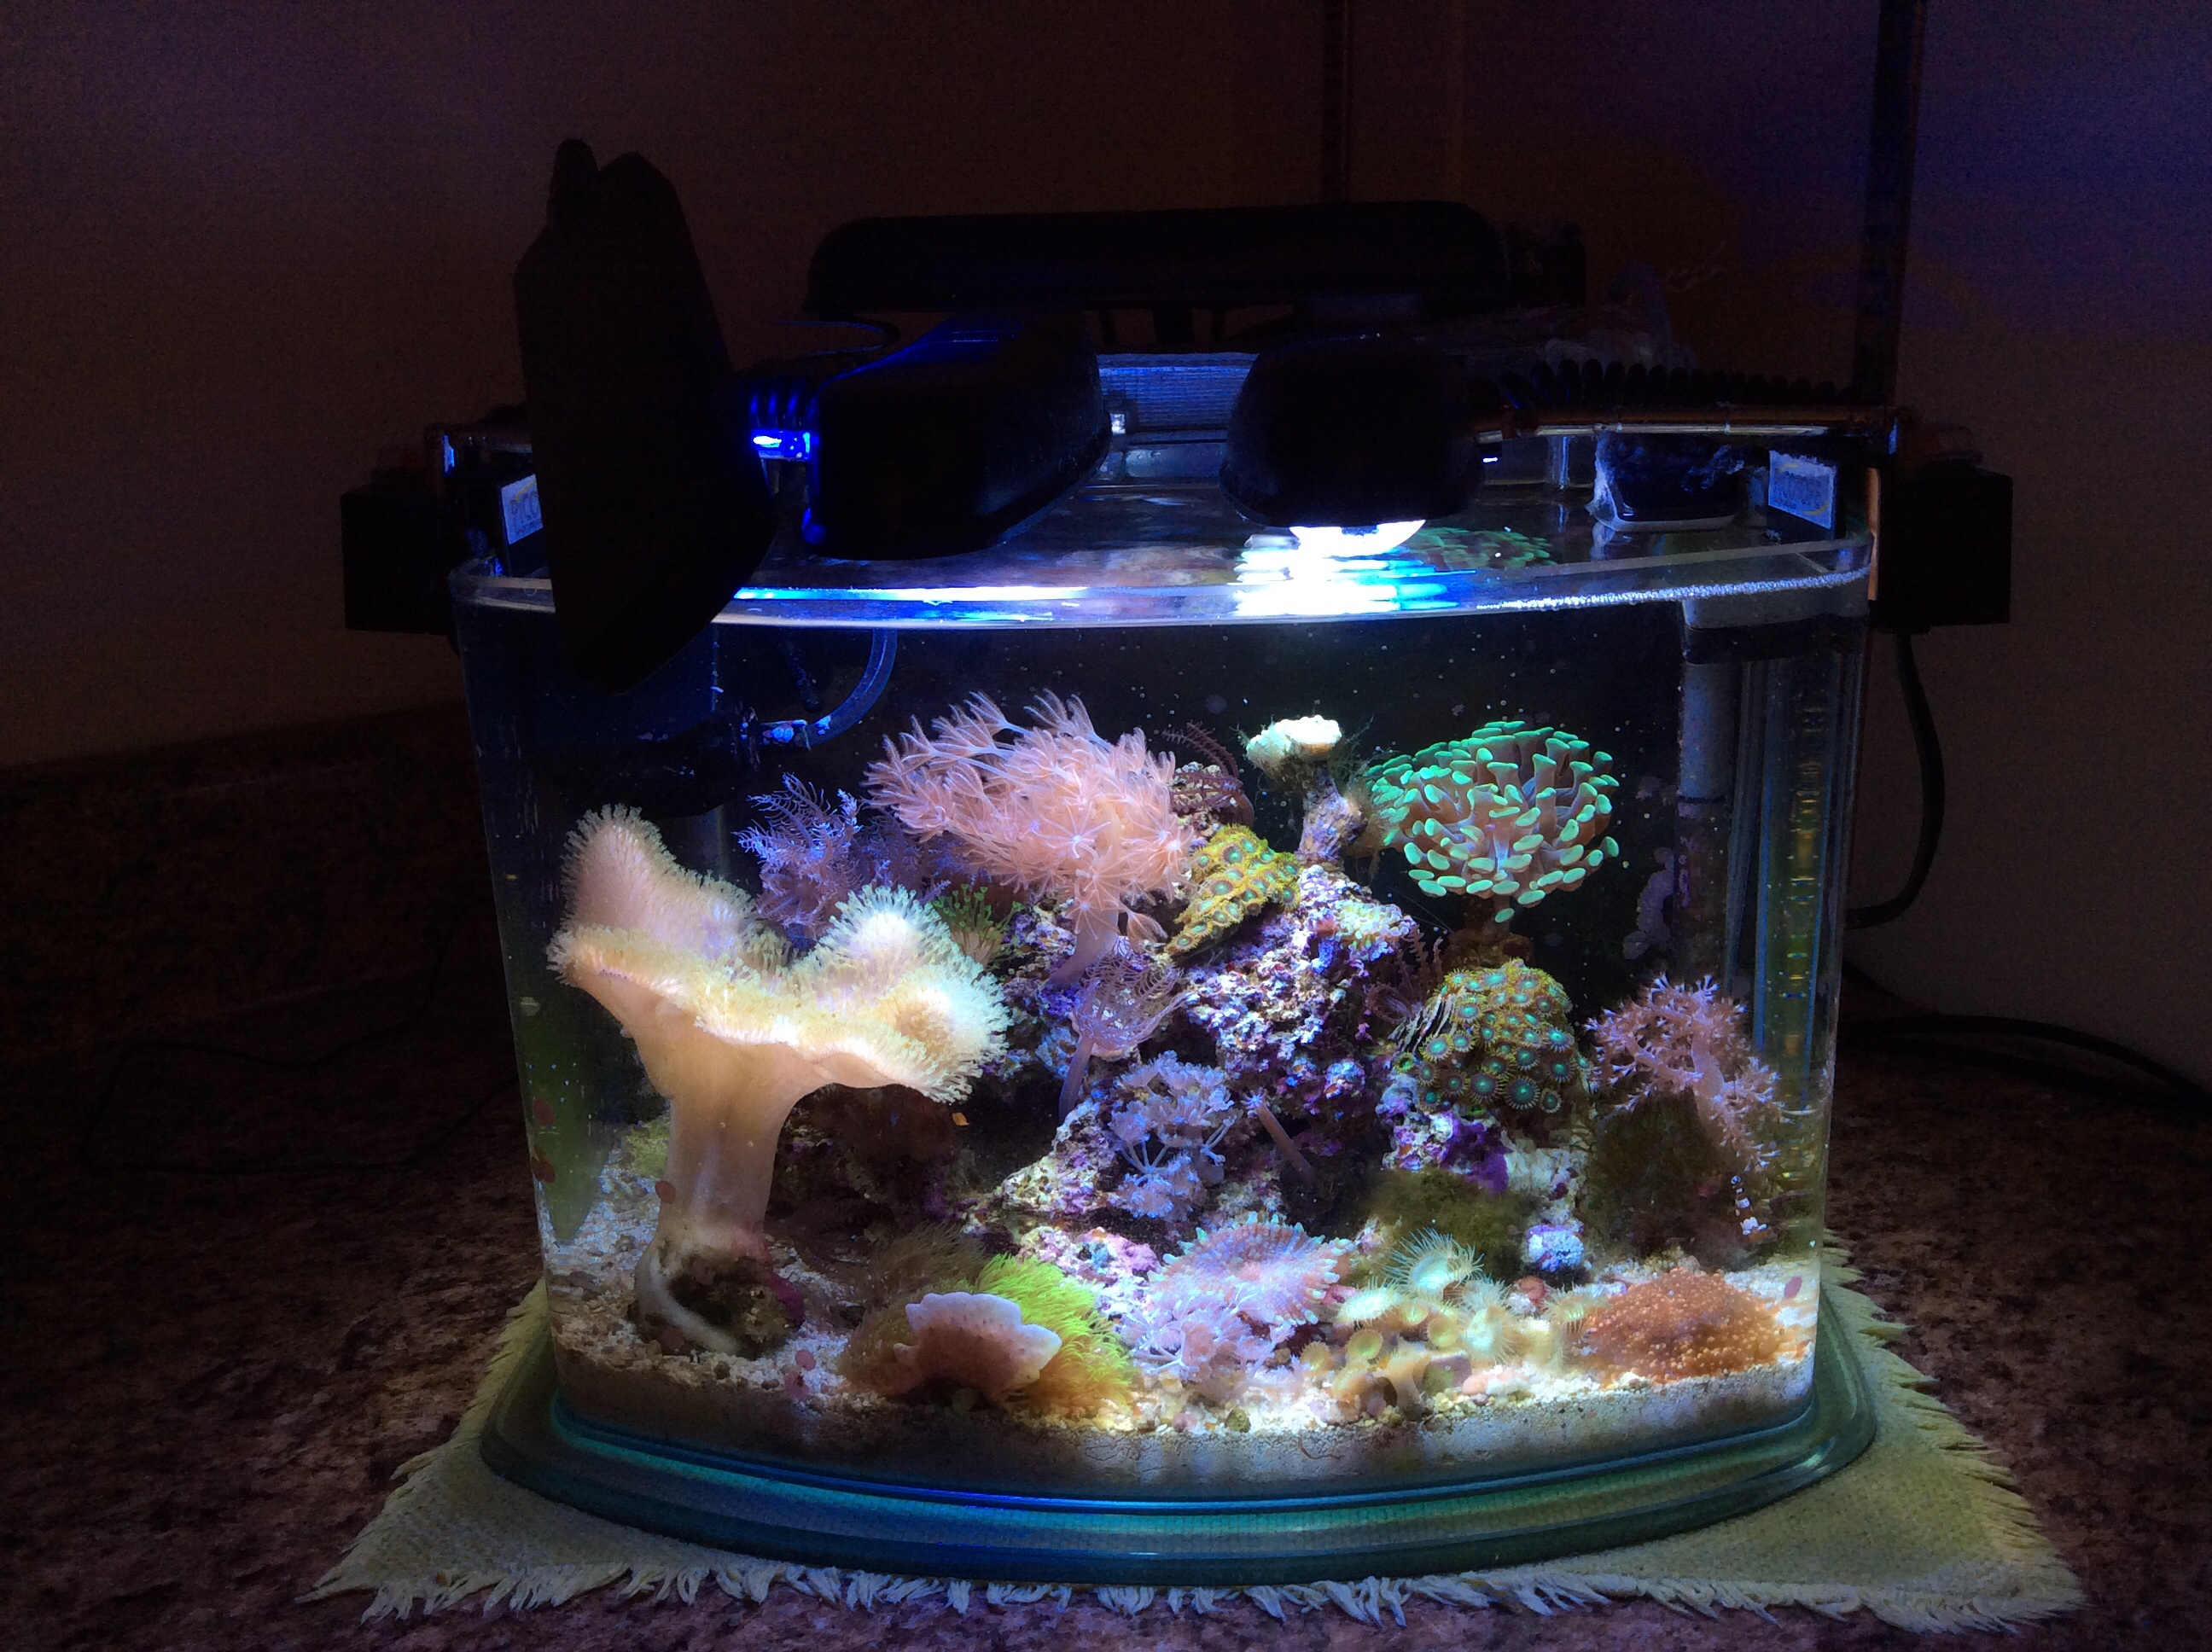 Small salt water aquarium with various soft corals